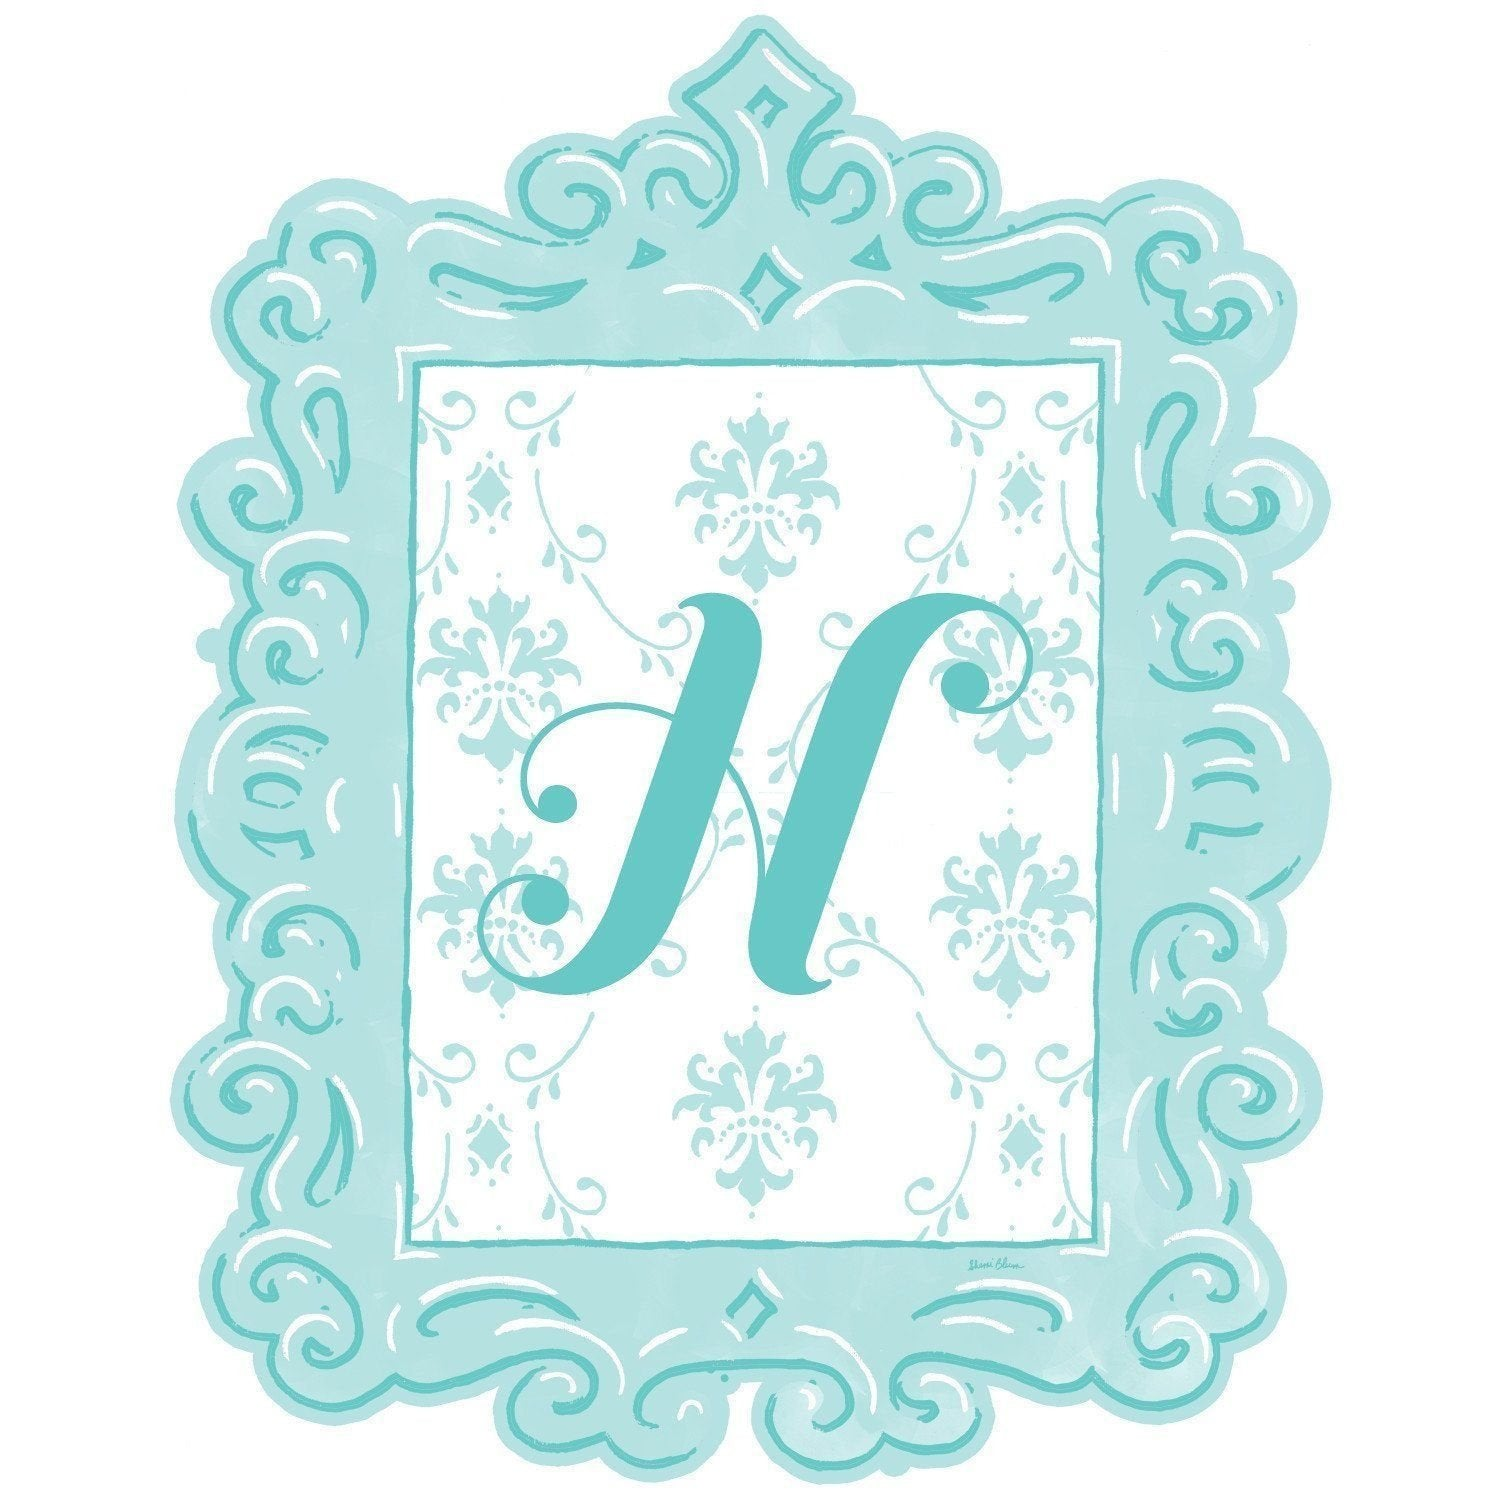 Framed Damask Monogram Wall Decal in Turquoise-Decals-Default-Jack and Jill Boutique